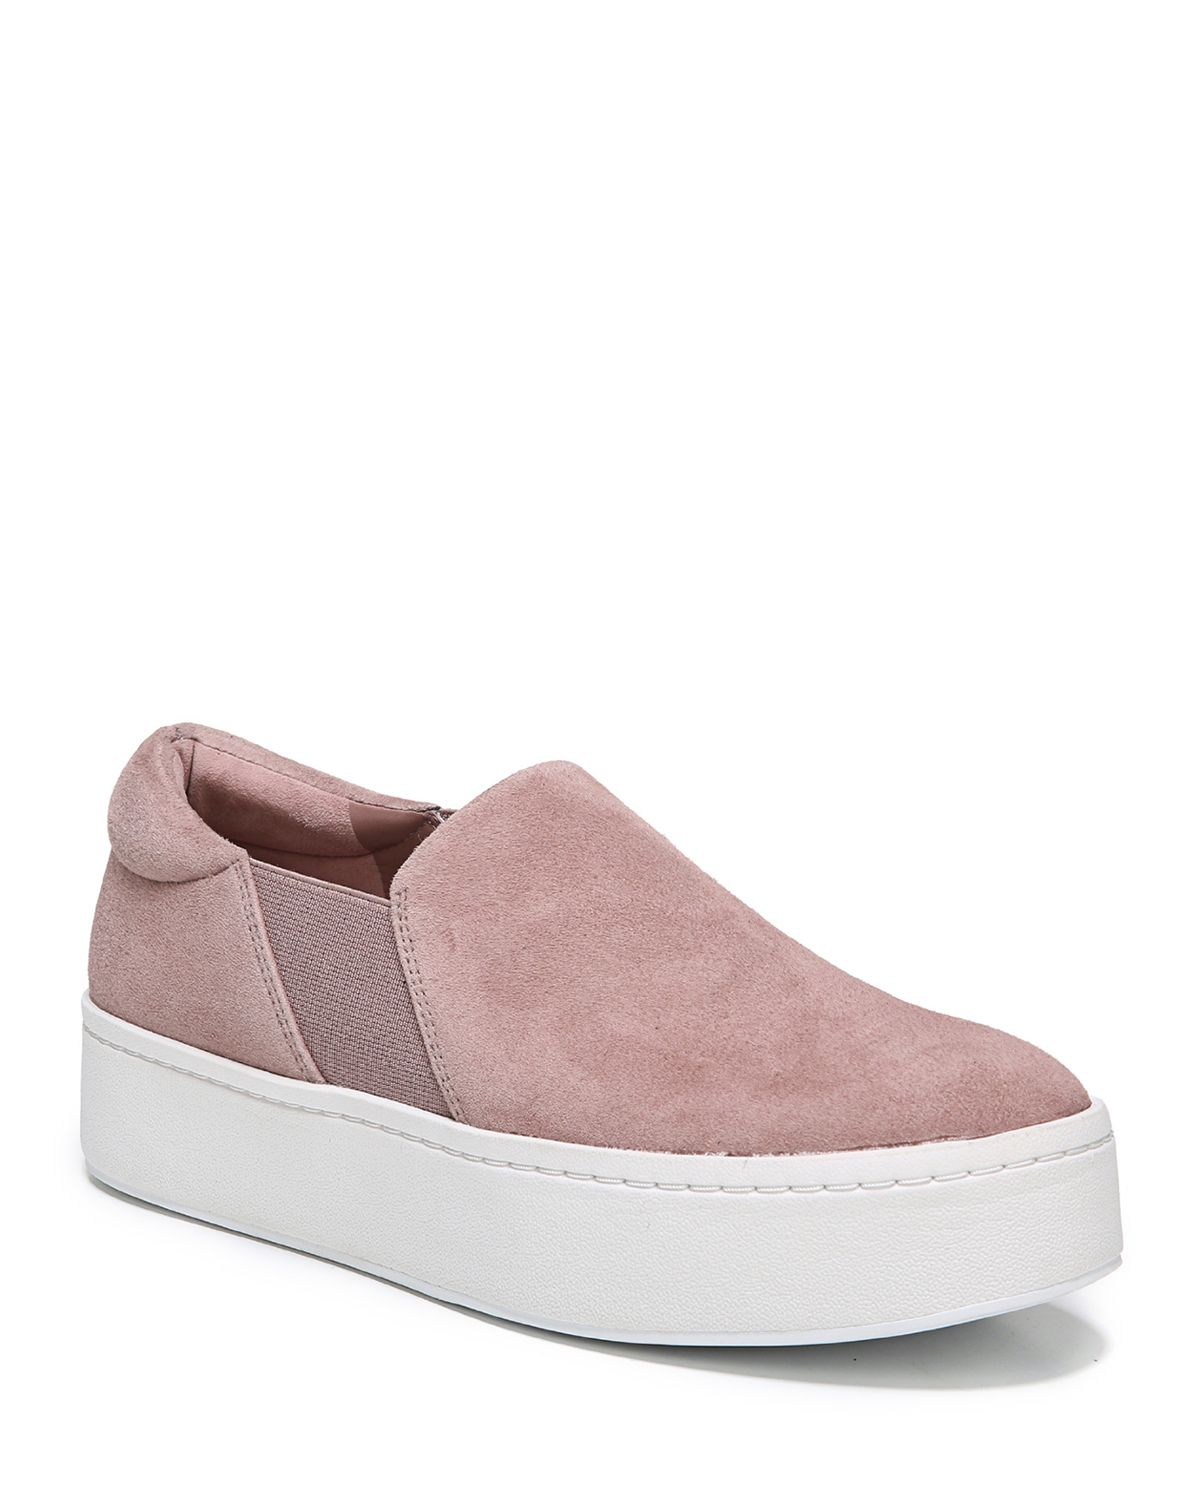 Vince Flatform Slip-On Sneakers